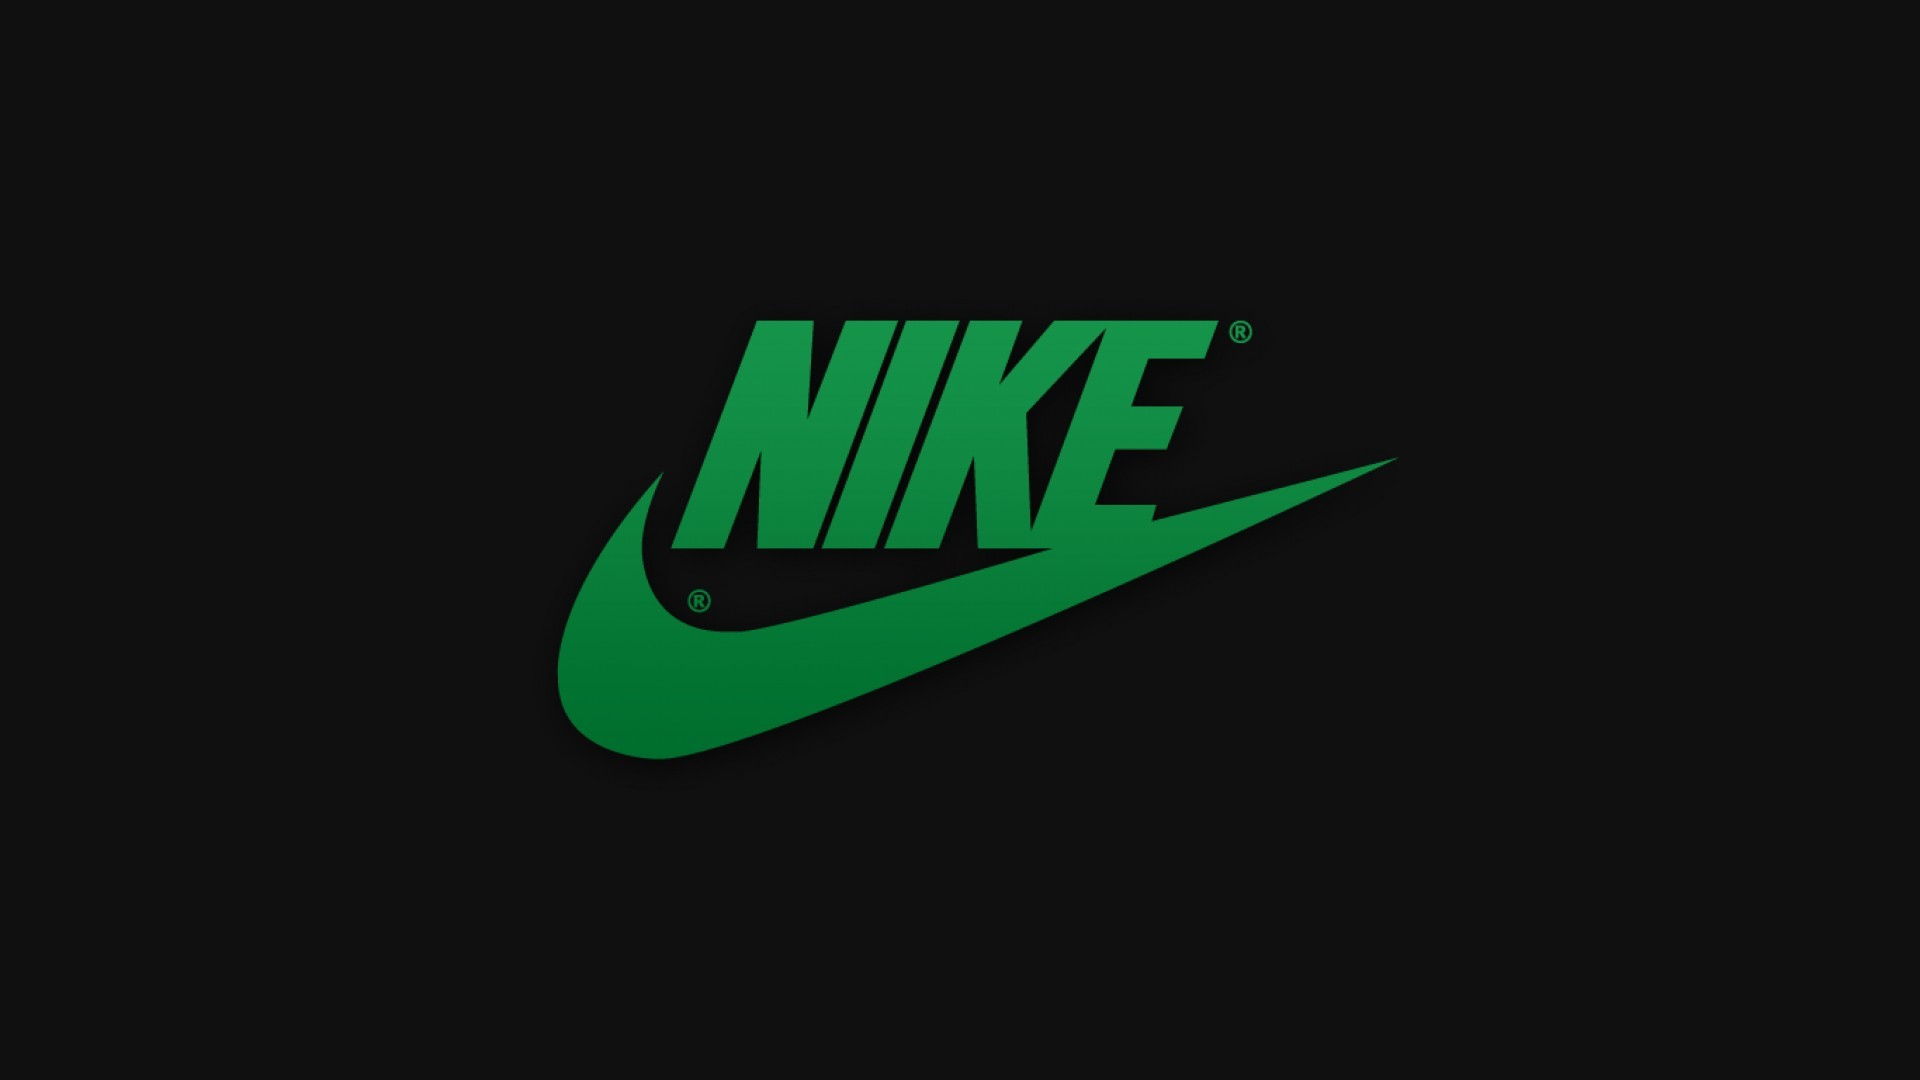 1920x1080 0  Nike Wallpaper HD 1080p  Nike Wallpaper HD 1080p